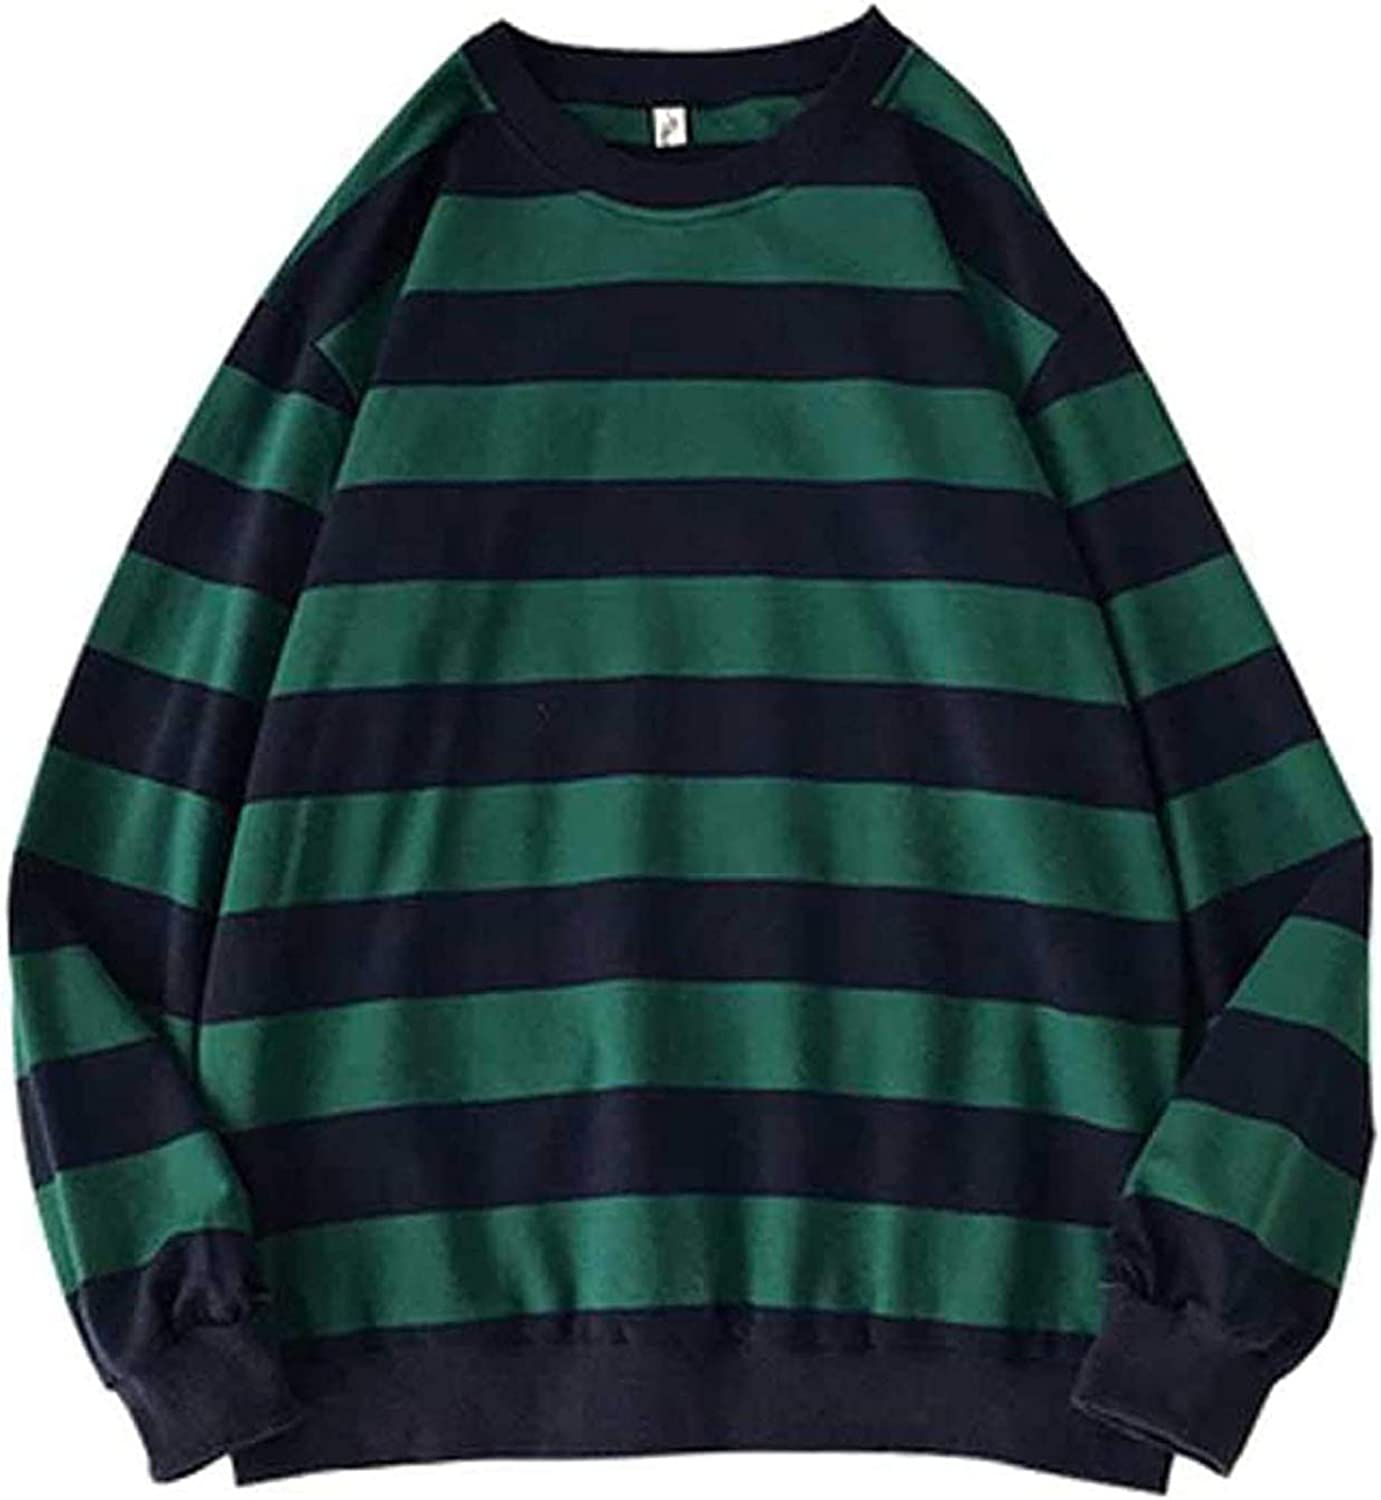 UBST Striped Sweatshirts for Mens, Fall Long Sleeve Crewneck Loose Tops Young Teen Boys Street Fashion Casual Pullover